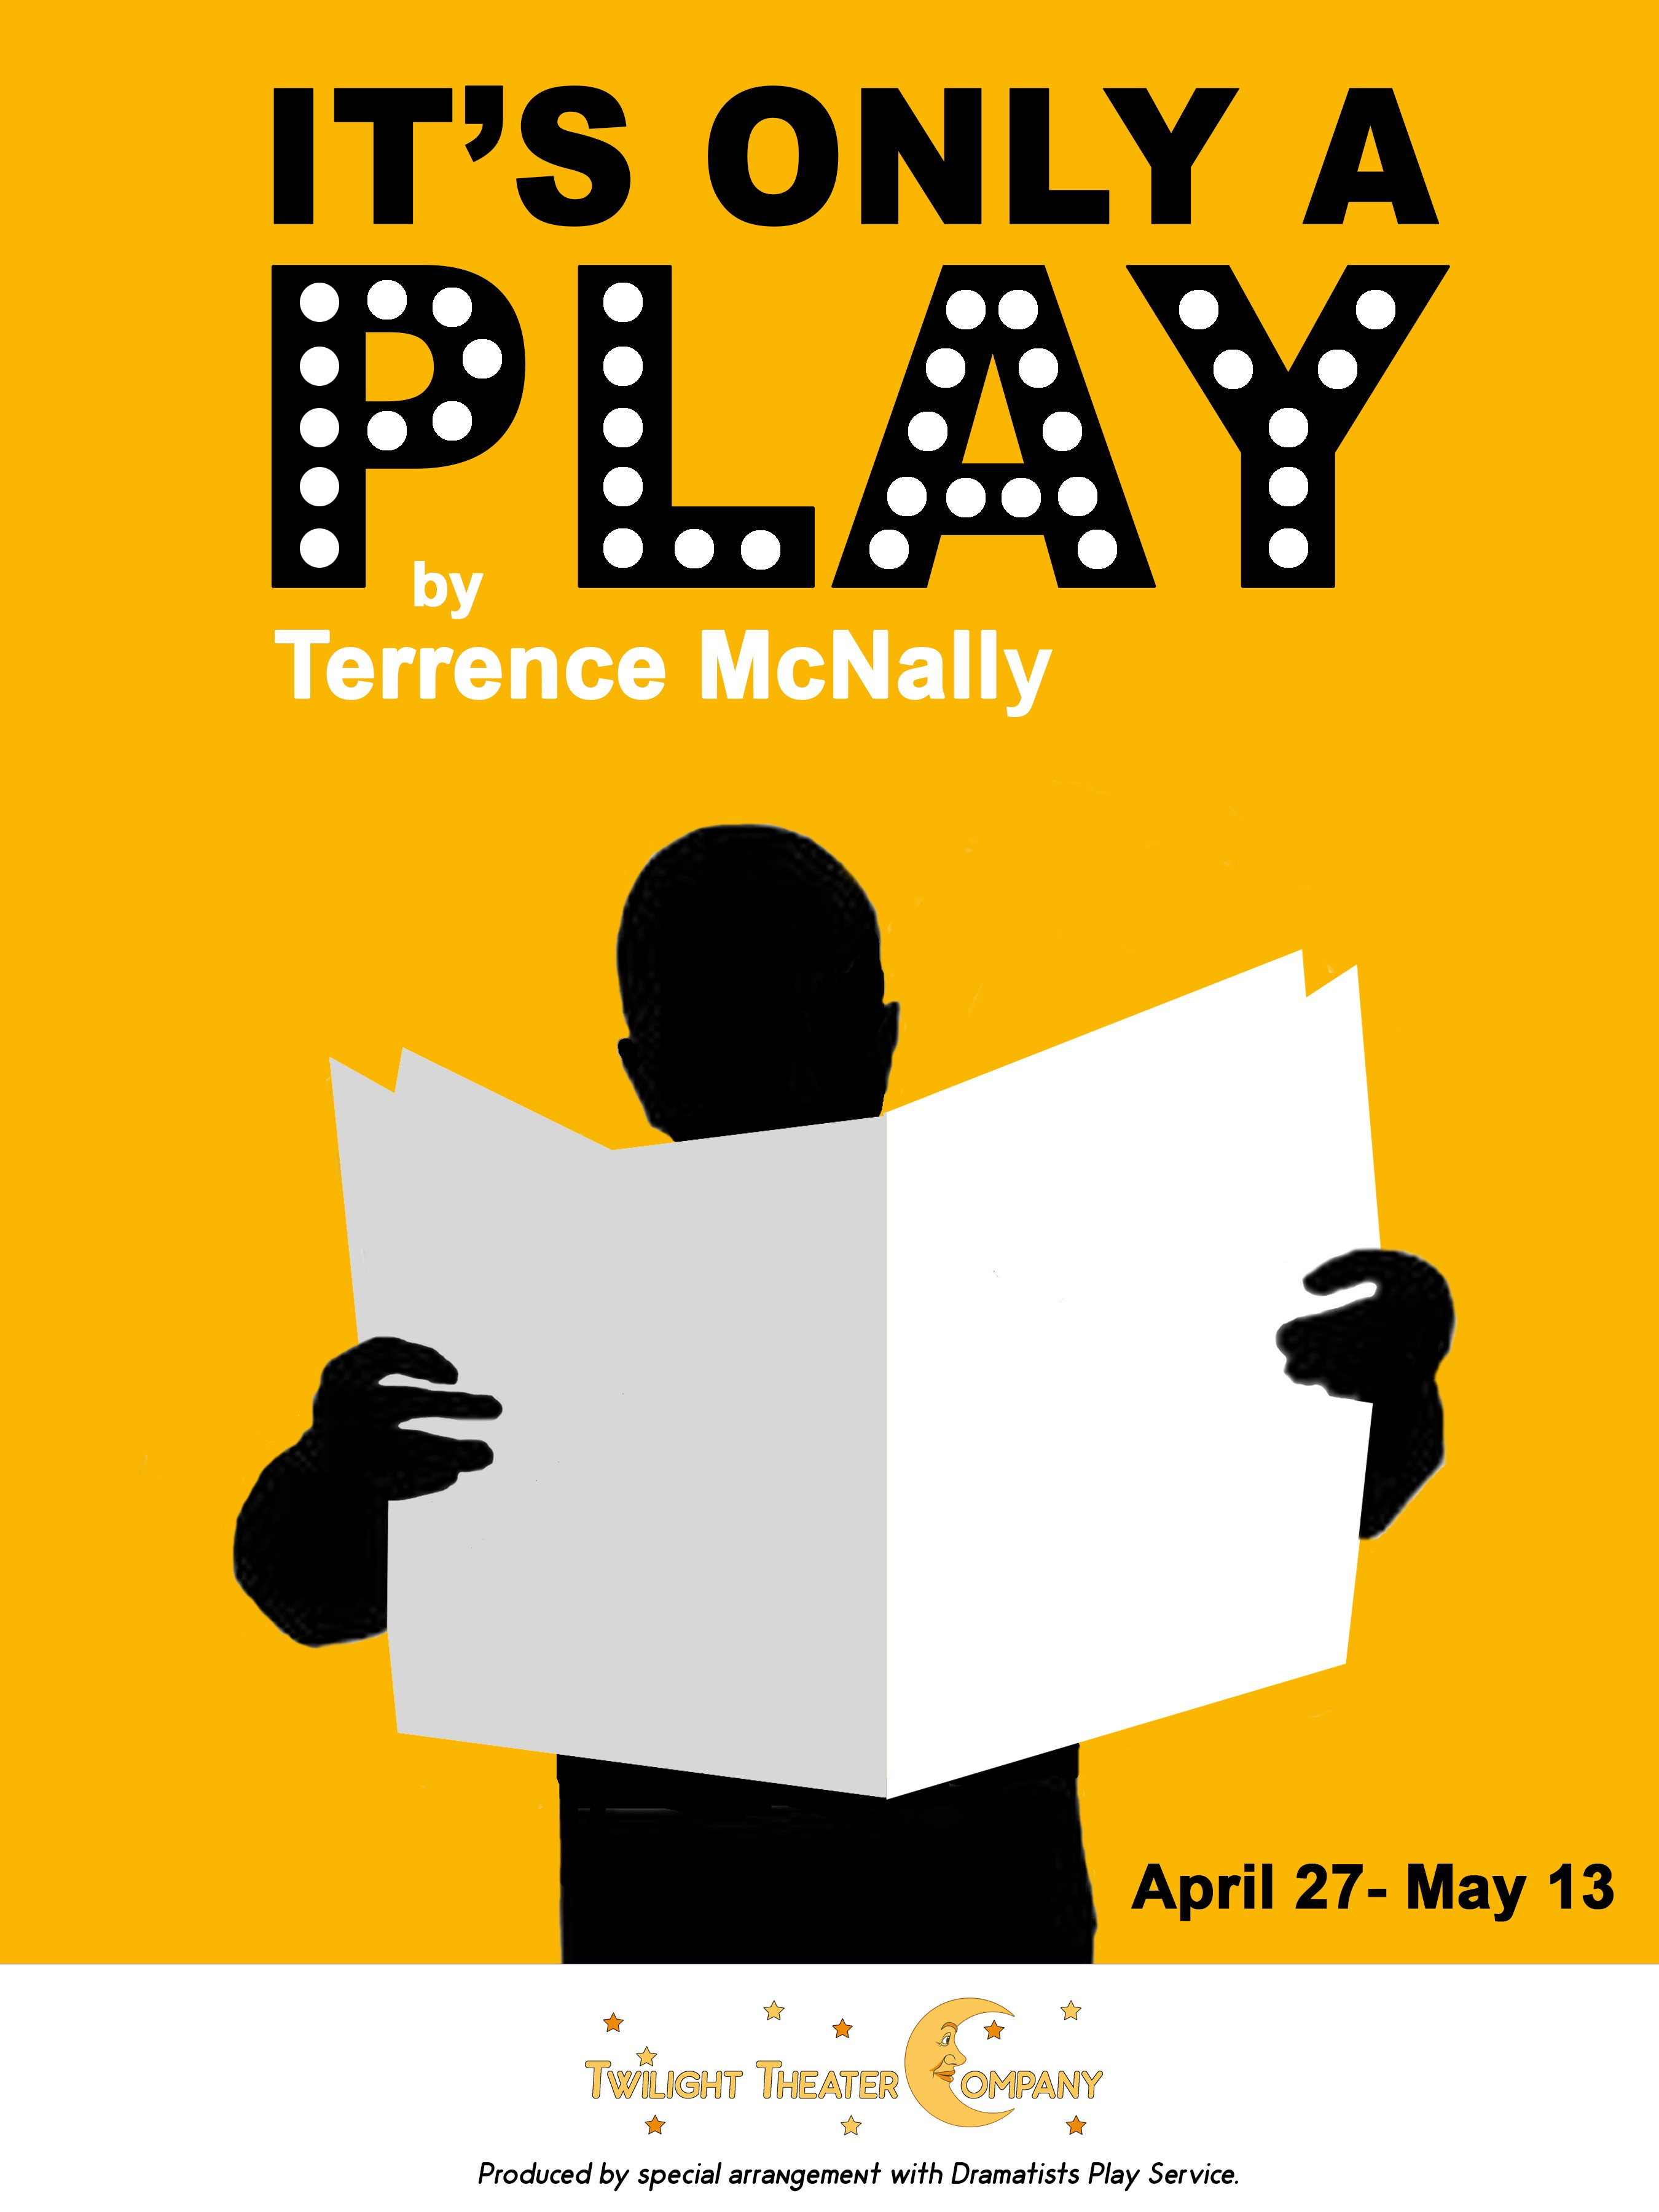 Twilight Theater Company Presents Their Production Of Terence McNallys Satirical Play About A The Golden Egg And Confluence Headcases That